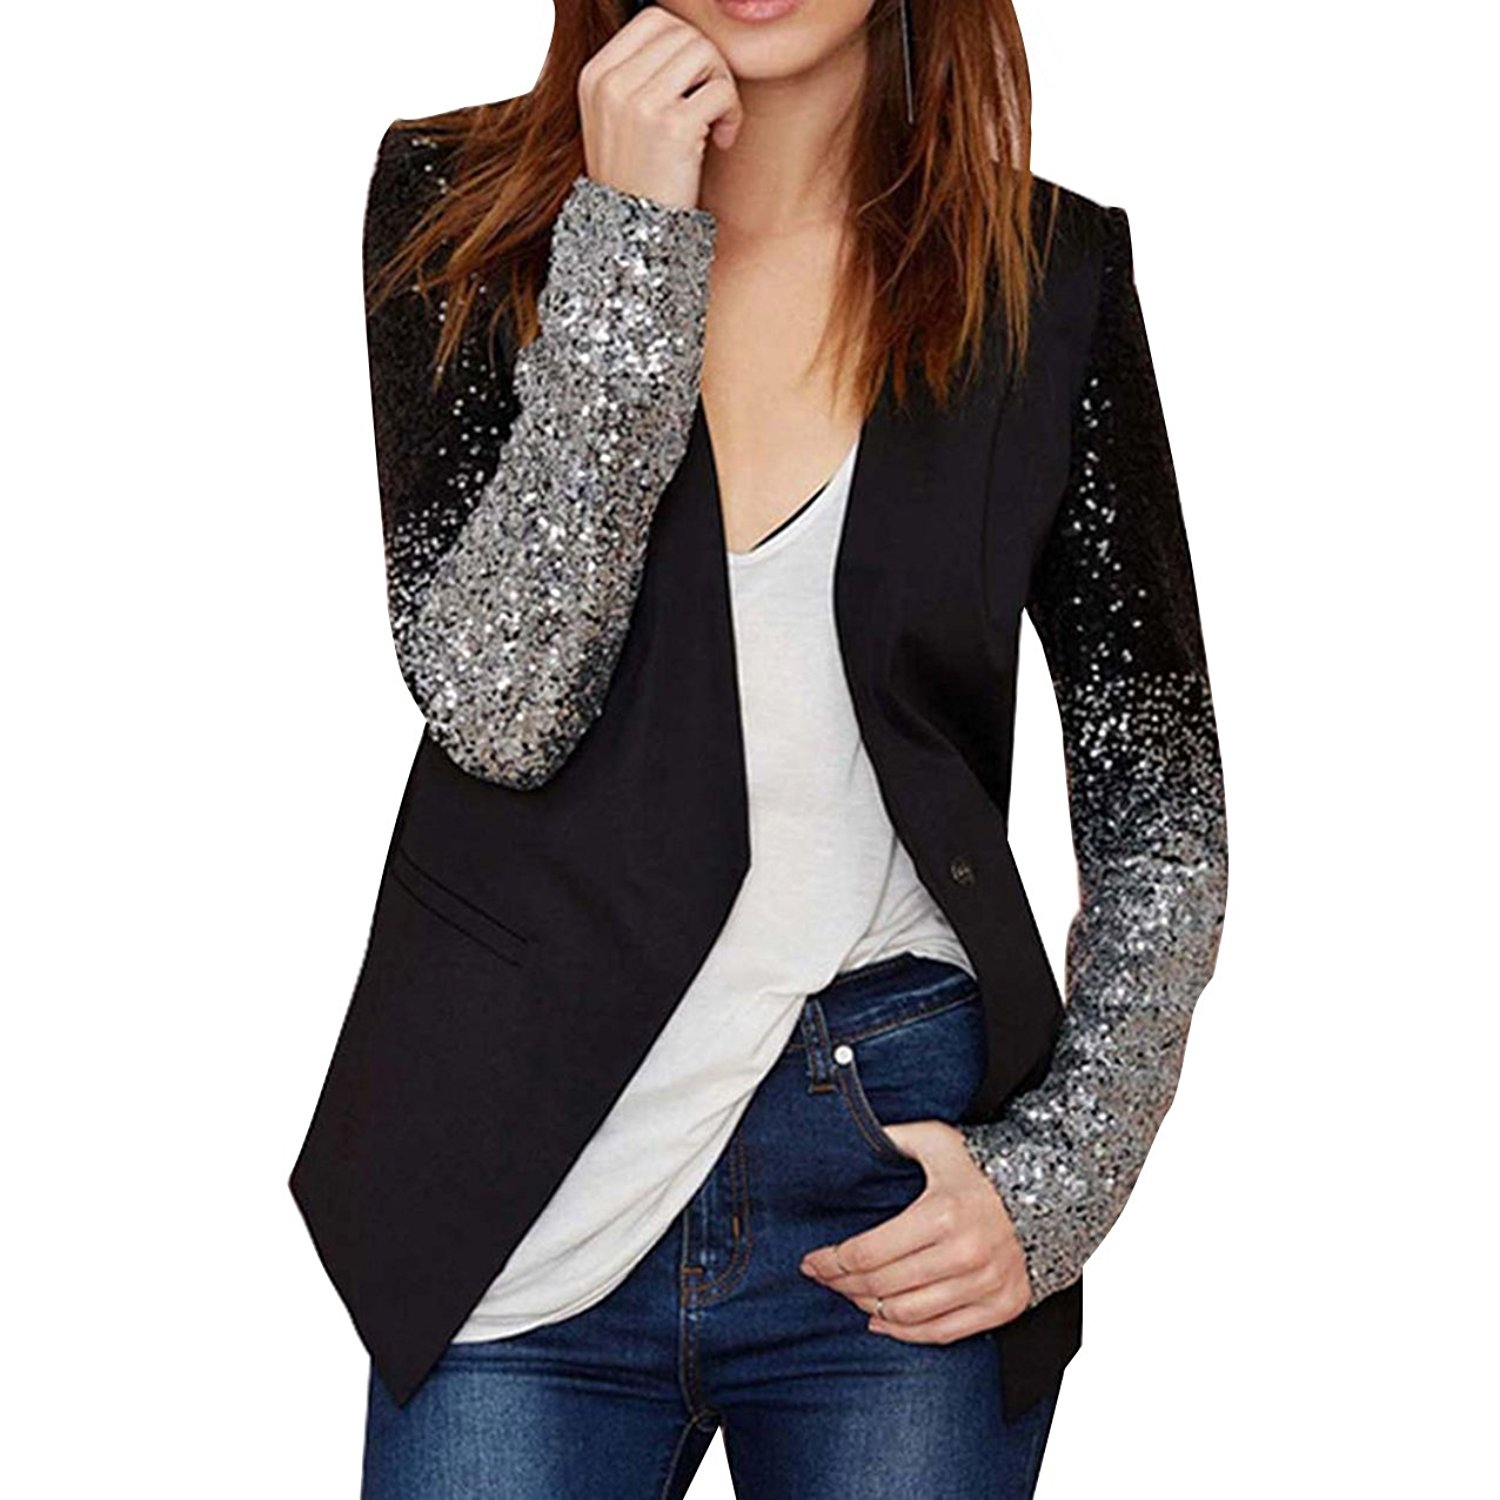 Fashion Women Black Silver Sequins Jackets Casual Ladies Slim Long Sleeve Jacket Sequined Cardigan Outwear Coat For Office Lady